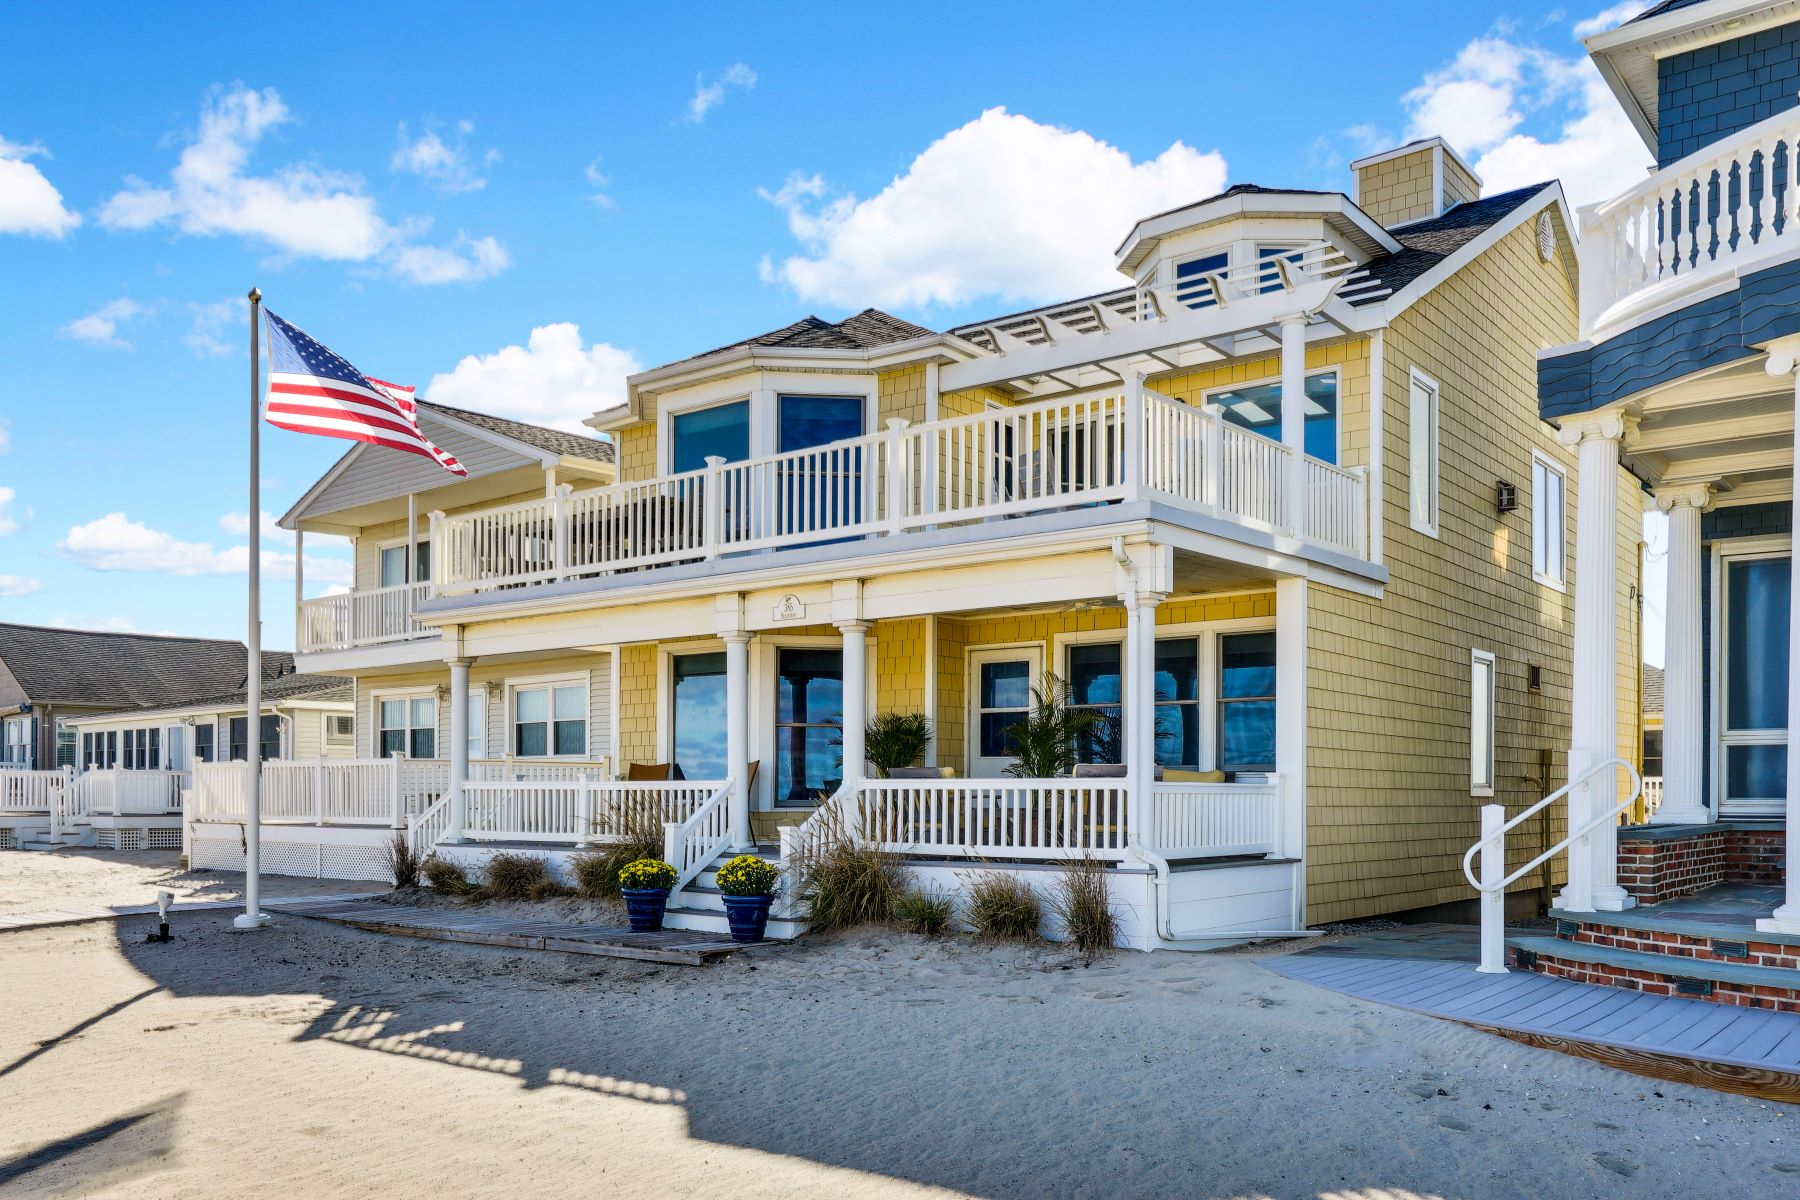 Single Family Homes for Sale at Beachfront Home 385 Beachfront Manasquan, New Jersey 08736 United States